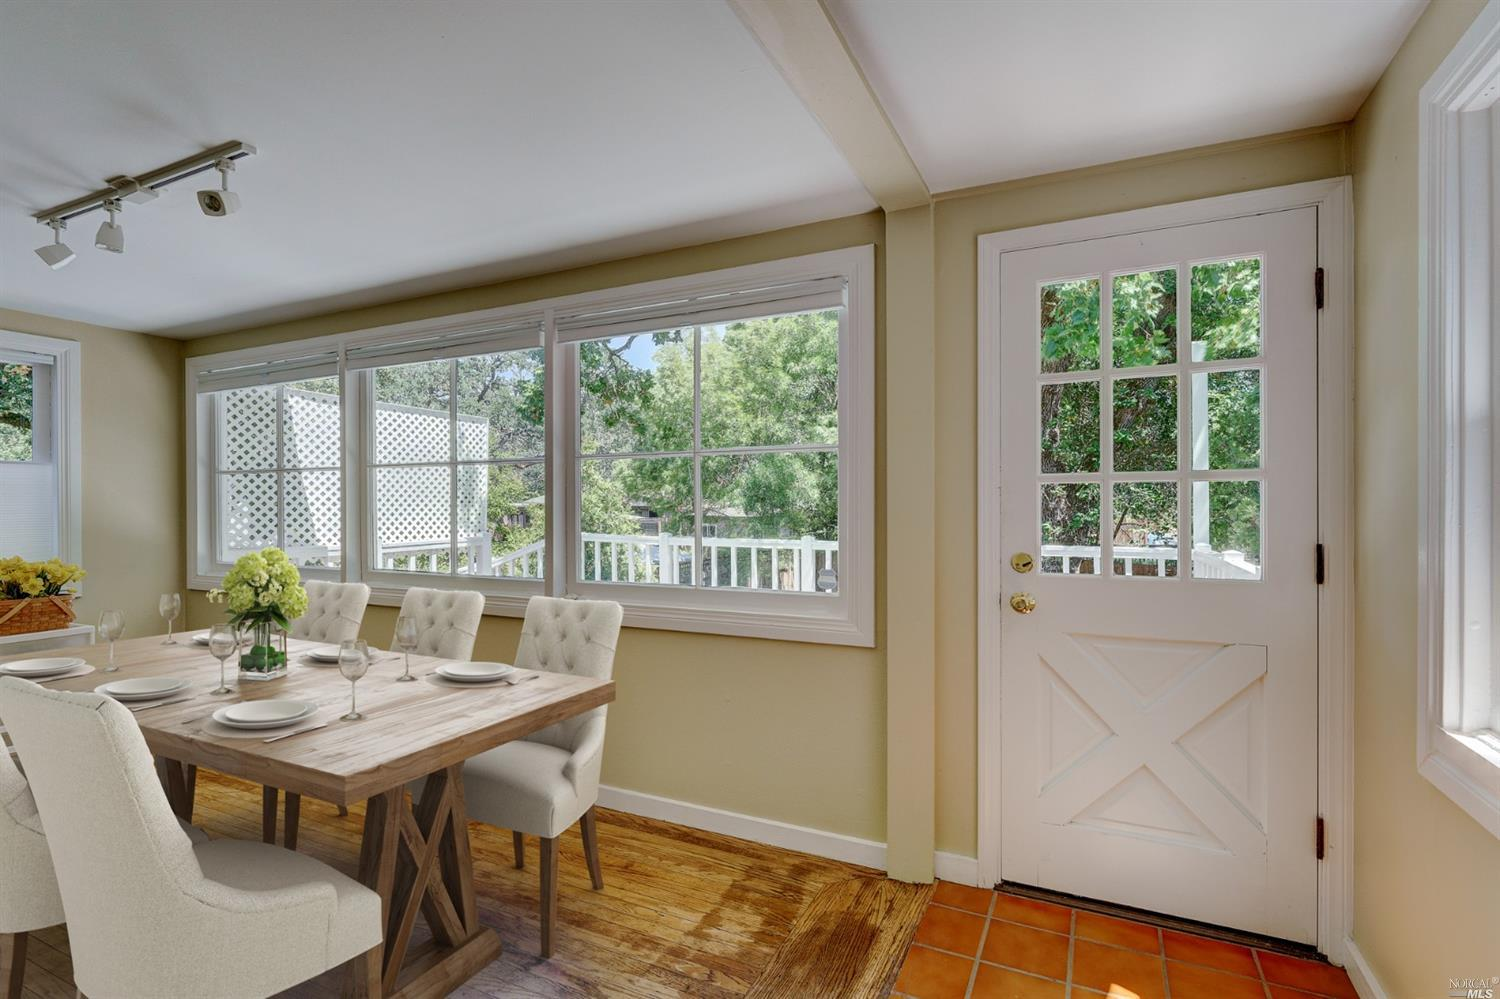 Vintage charm accentuates this Sonoma Springs home offering hardwood floors, stone fireplace, updated kitchen and baths. Sunroom that can be used as a dining area or artist room that flows onto the sunny deck. Dont miss the lower level area for  added square footage offering  a spacious/flexible floor plan that can be used as office or media room. Downstairs has laundry an additional full bath, one car garage. Nice backyard for gardening and entertaining. Near Sonoma Regional Park hiking, wineries, restaurants, movie theater and boutiques. This is an excellent weekend get away or full time wine country Sonoma Valley home.